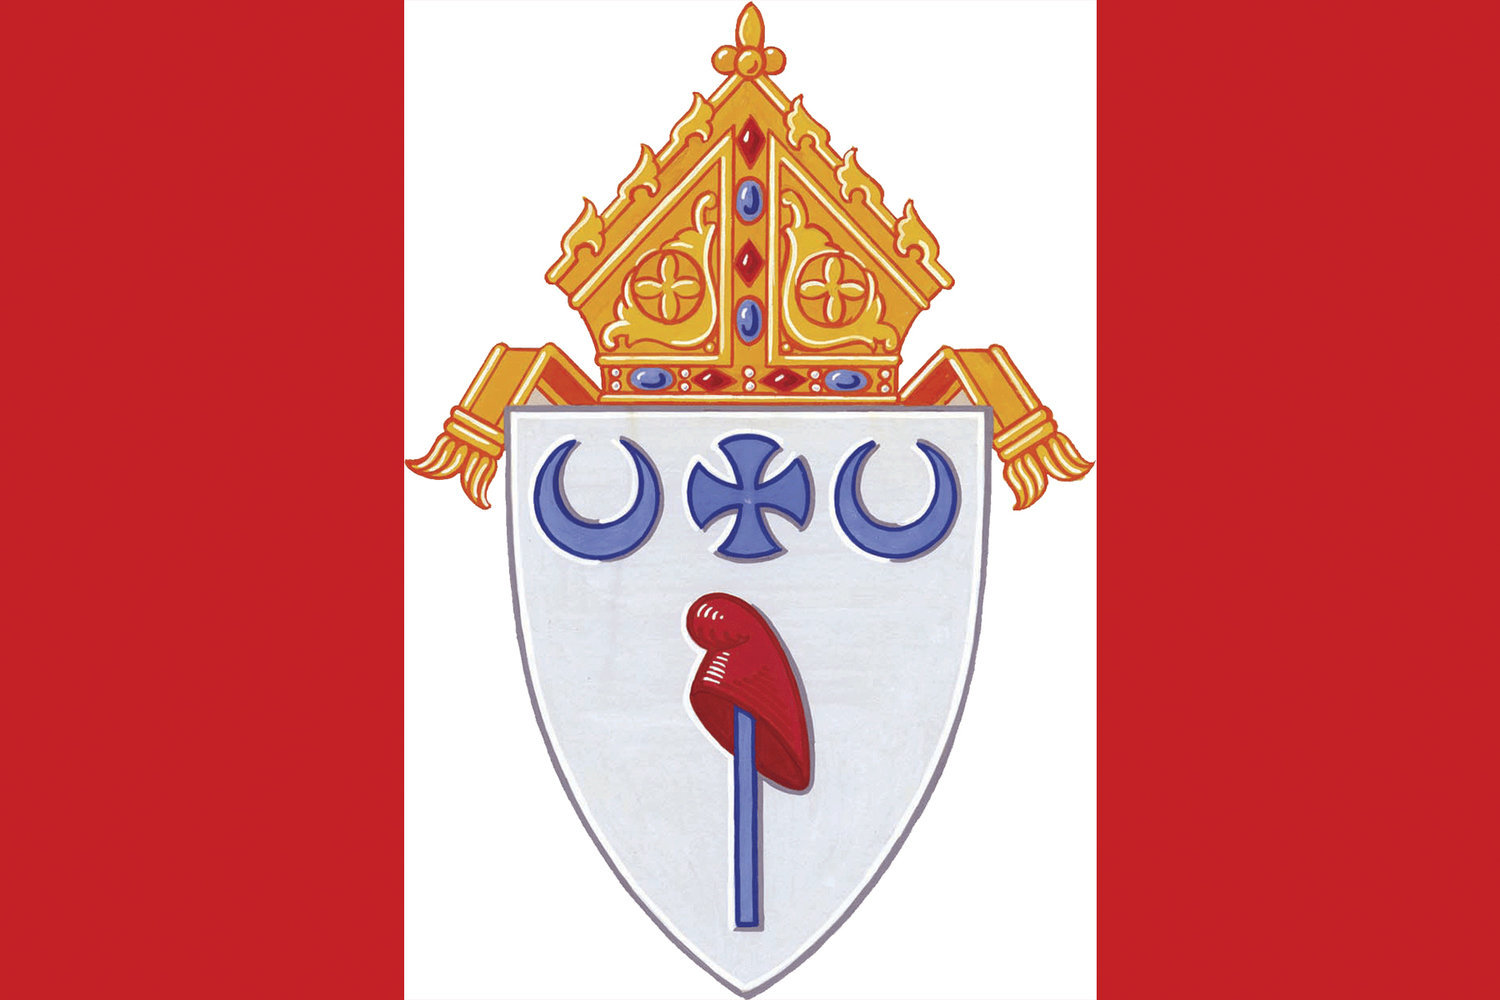 This is the Coat of Arms for the Diocese of Jefferson City.